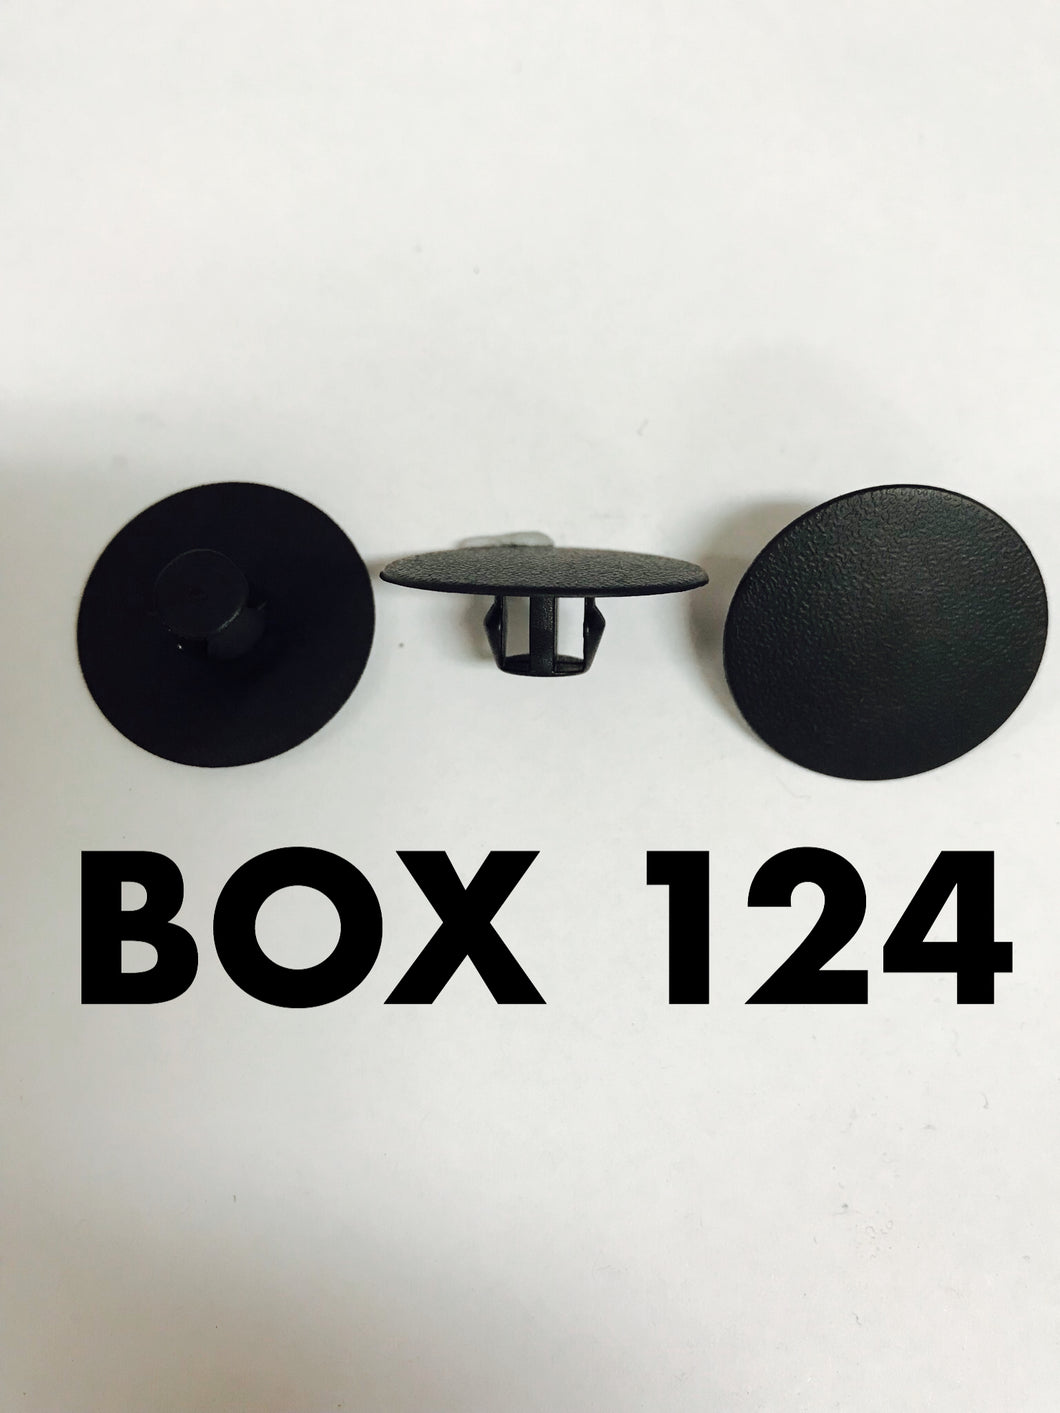 Carclips Box 124 10272 Bonnet Insulation Retainer